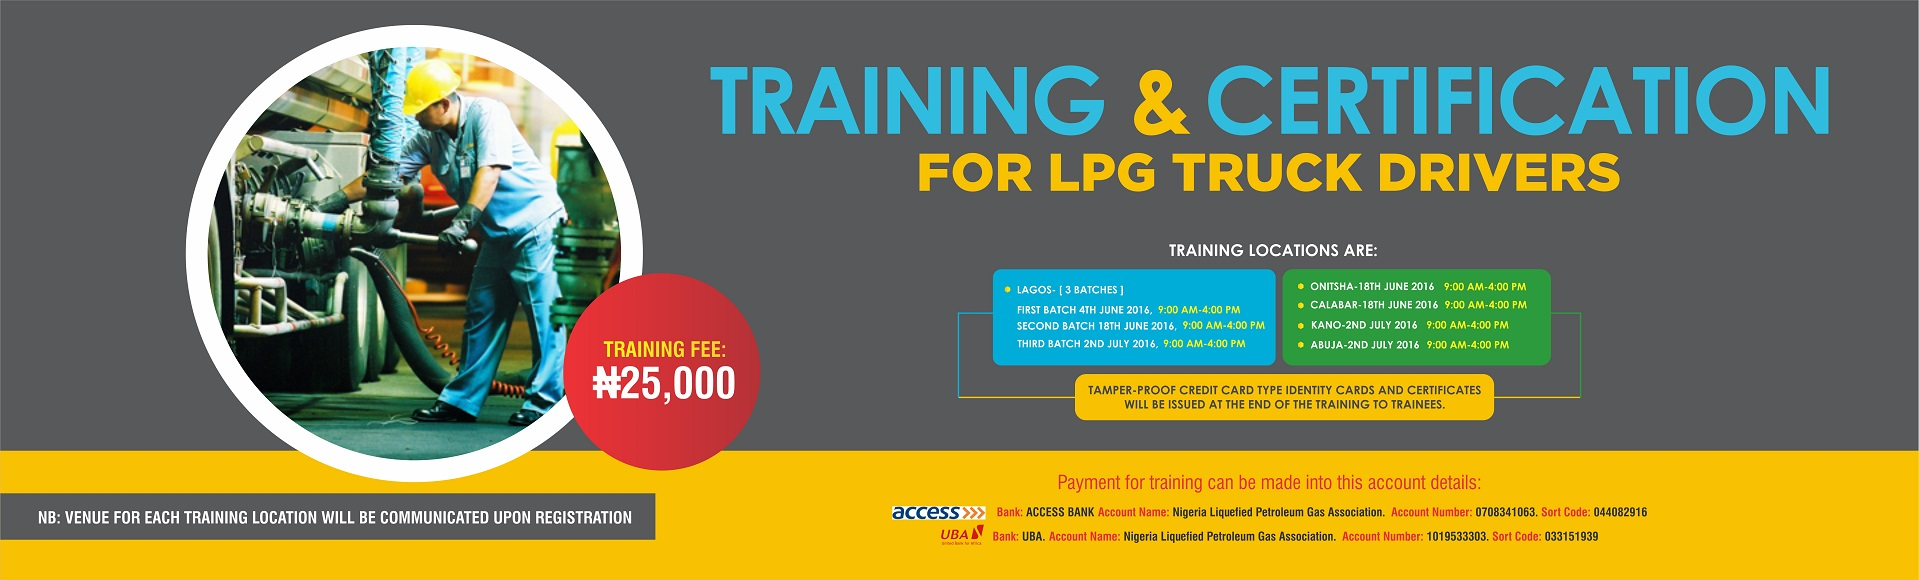 LPG SAFETY TRAINING AND CERTIFICATION